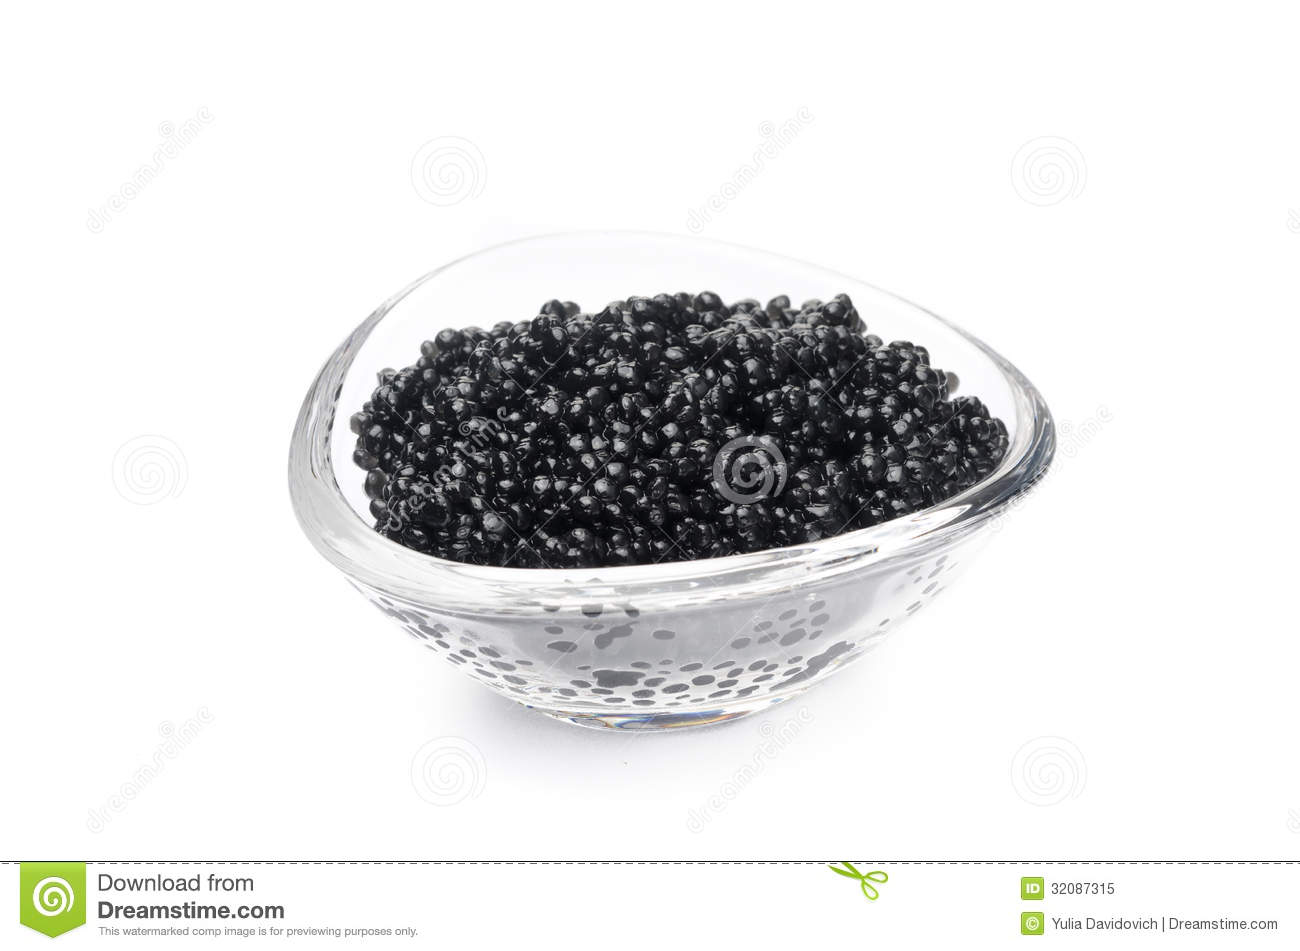 Black Caviar In A Glass Bowl Isolated On A White